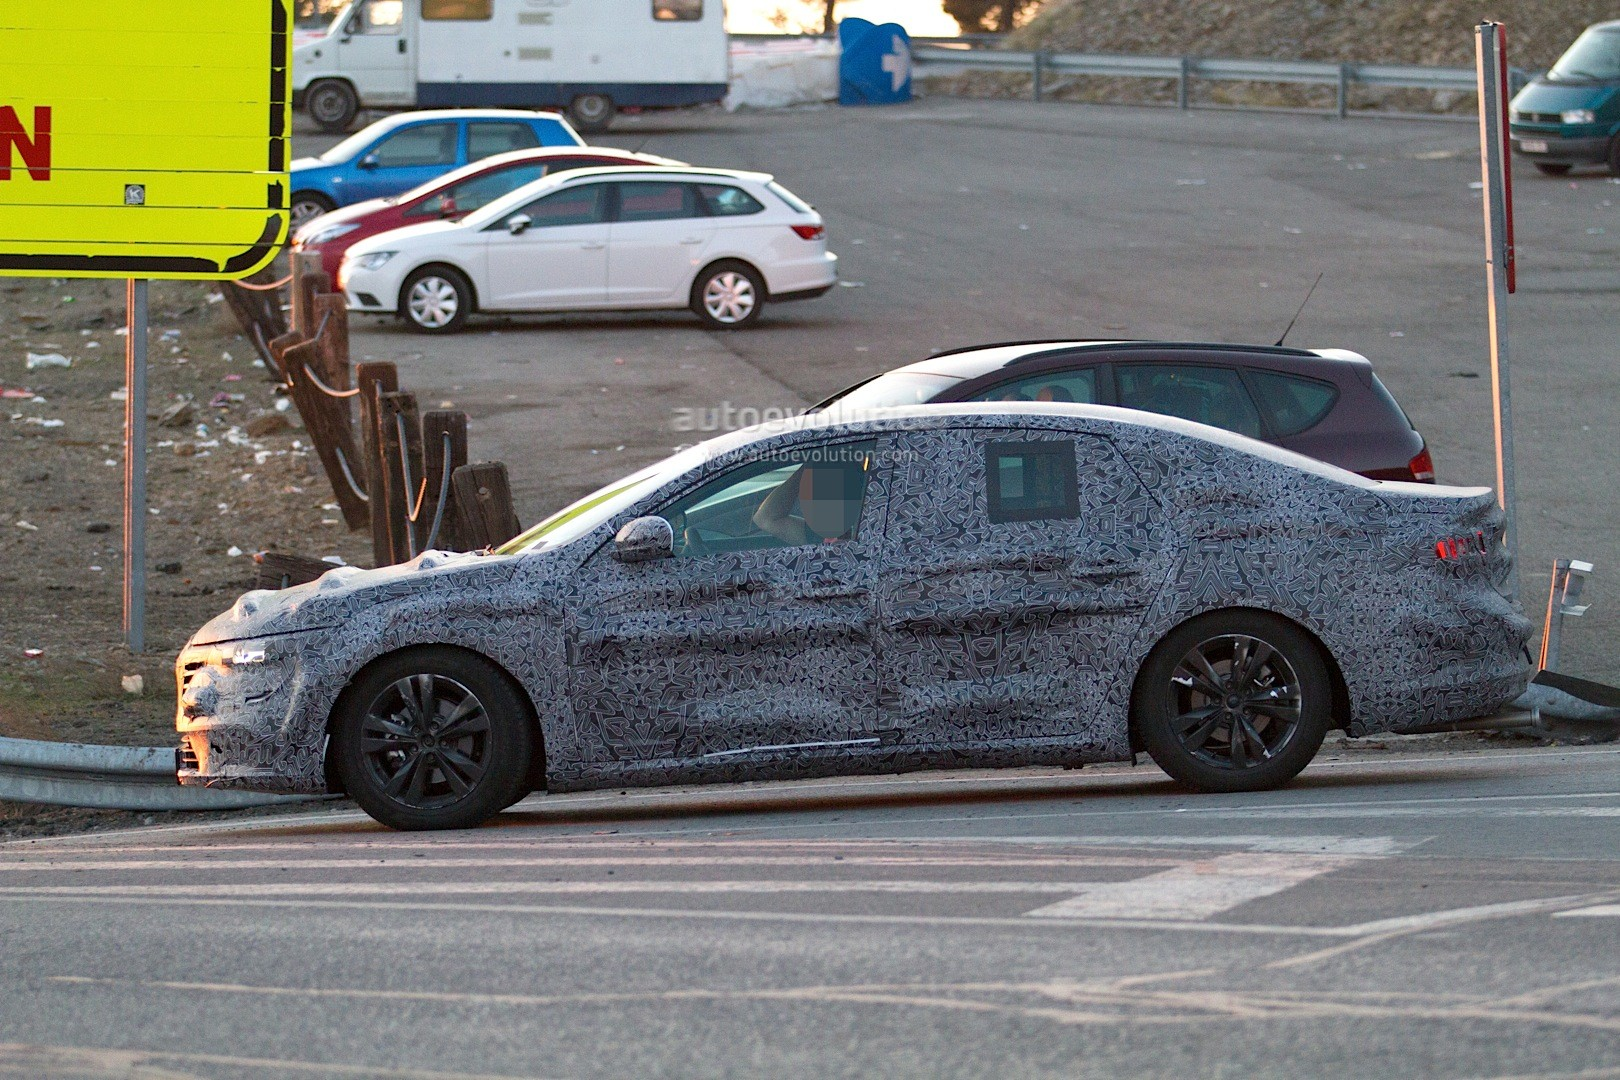 new renault laguna flagship sedan spied again could debut later in 2015 autoevolution. Black Bedroom Furniture Sets. Home Design Ideas